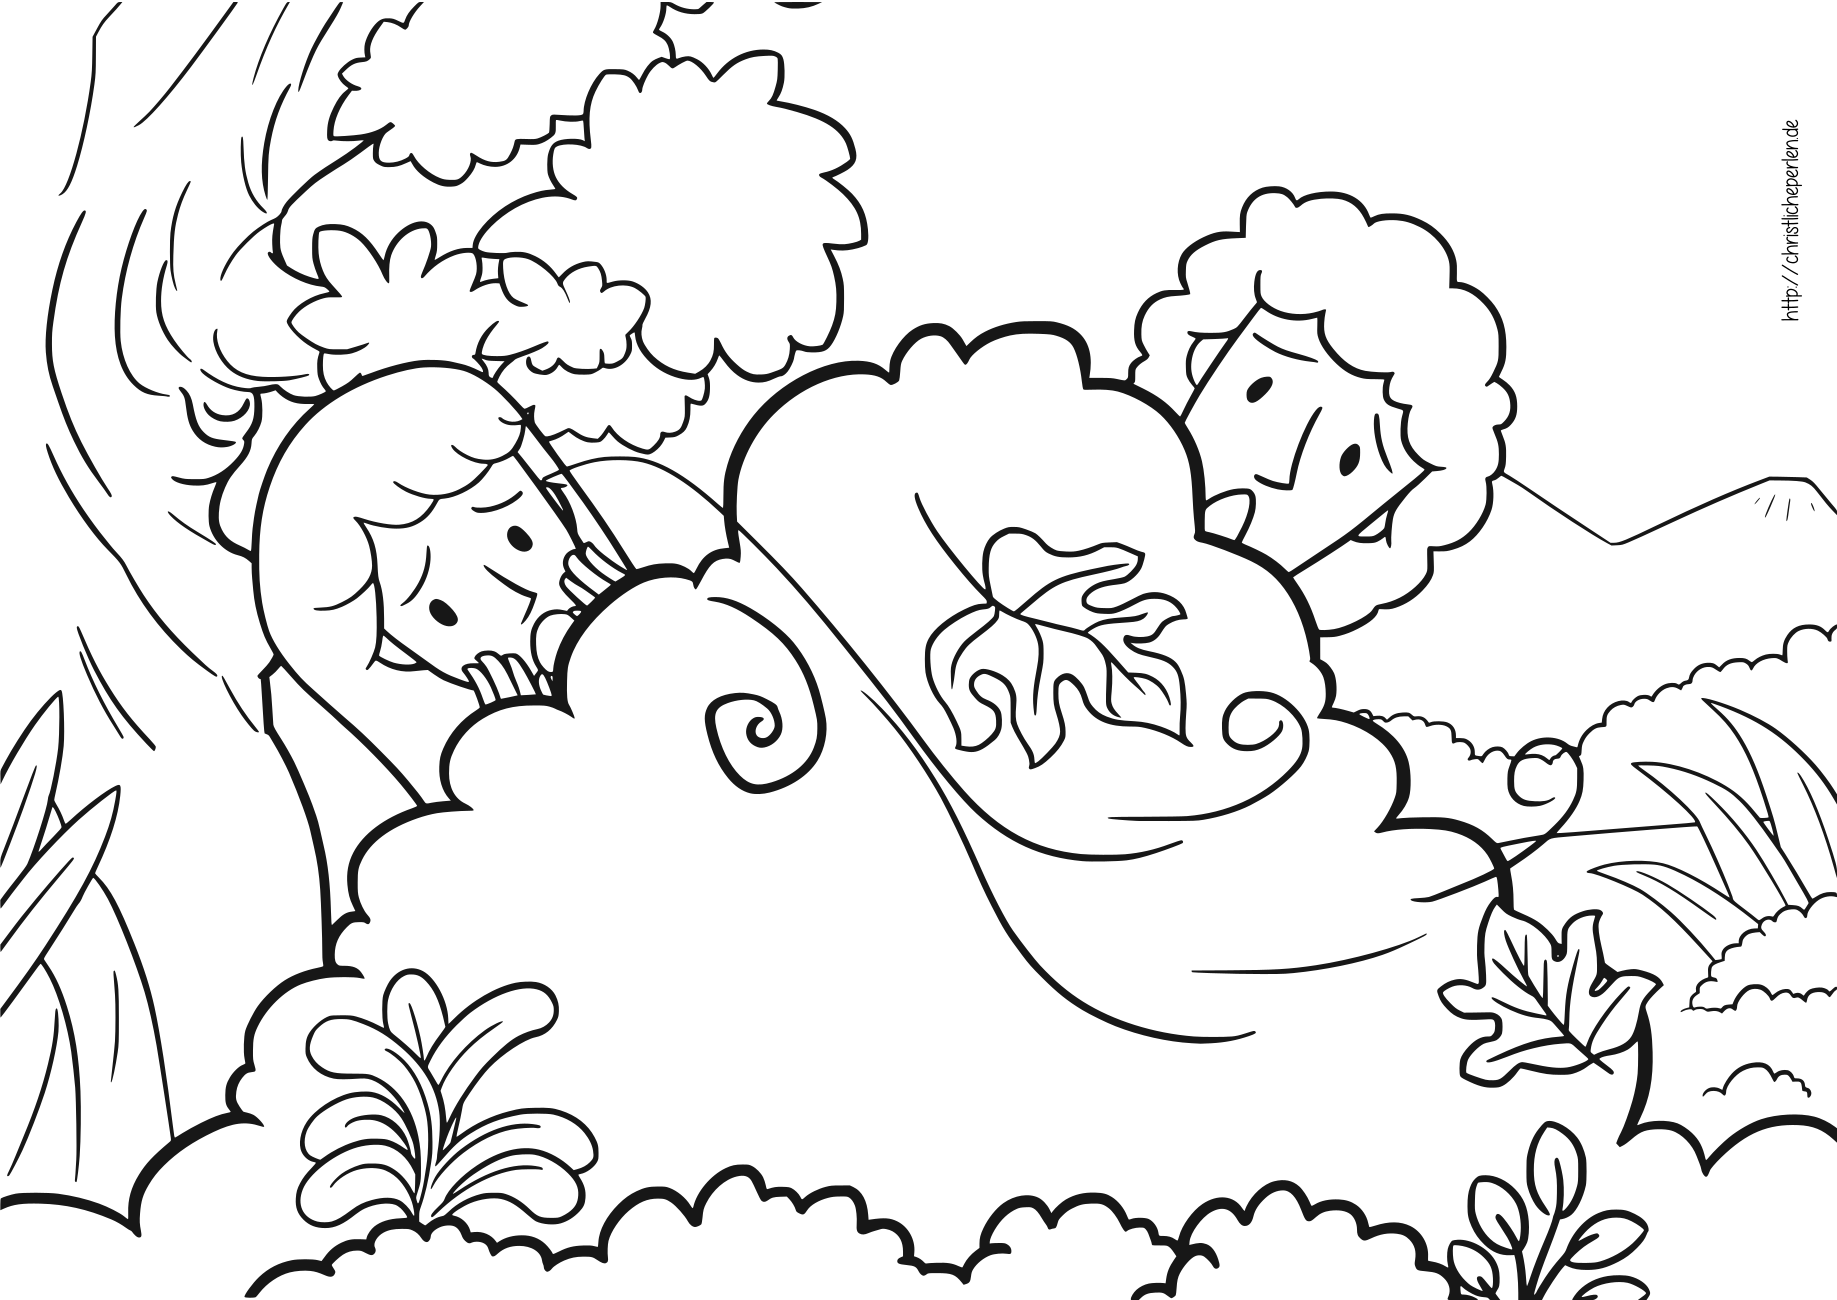 Adam und eva ausmalen adam and eve coloring pages for Coloring pages adam and eve